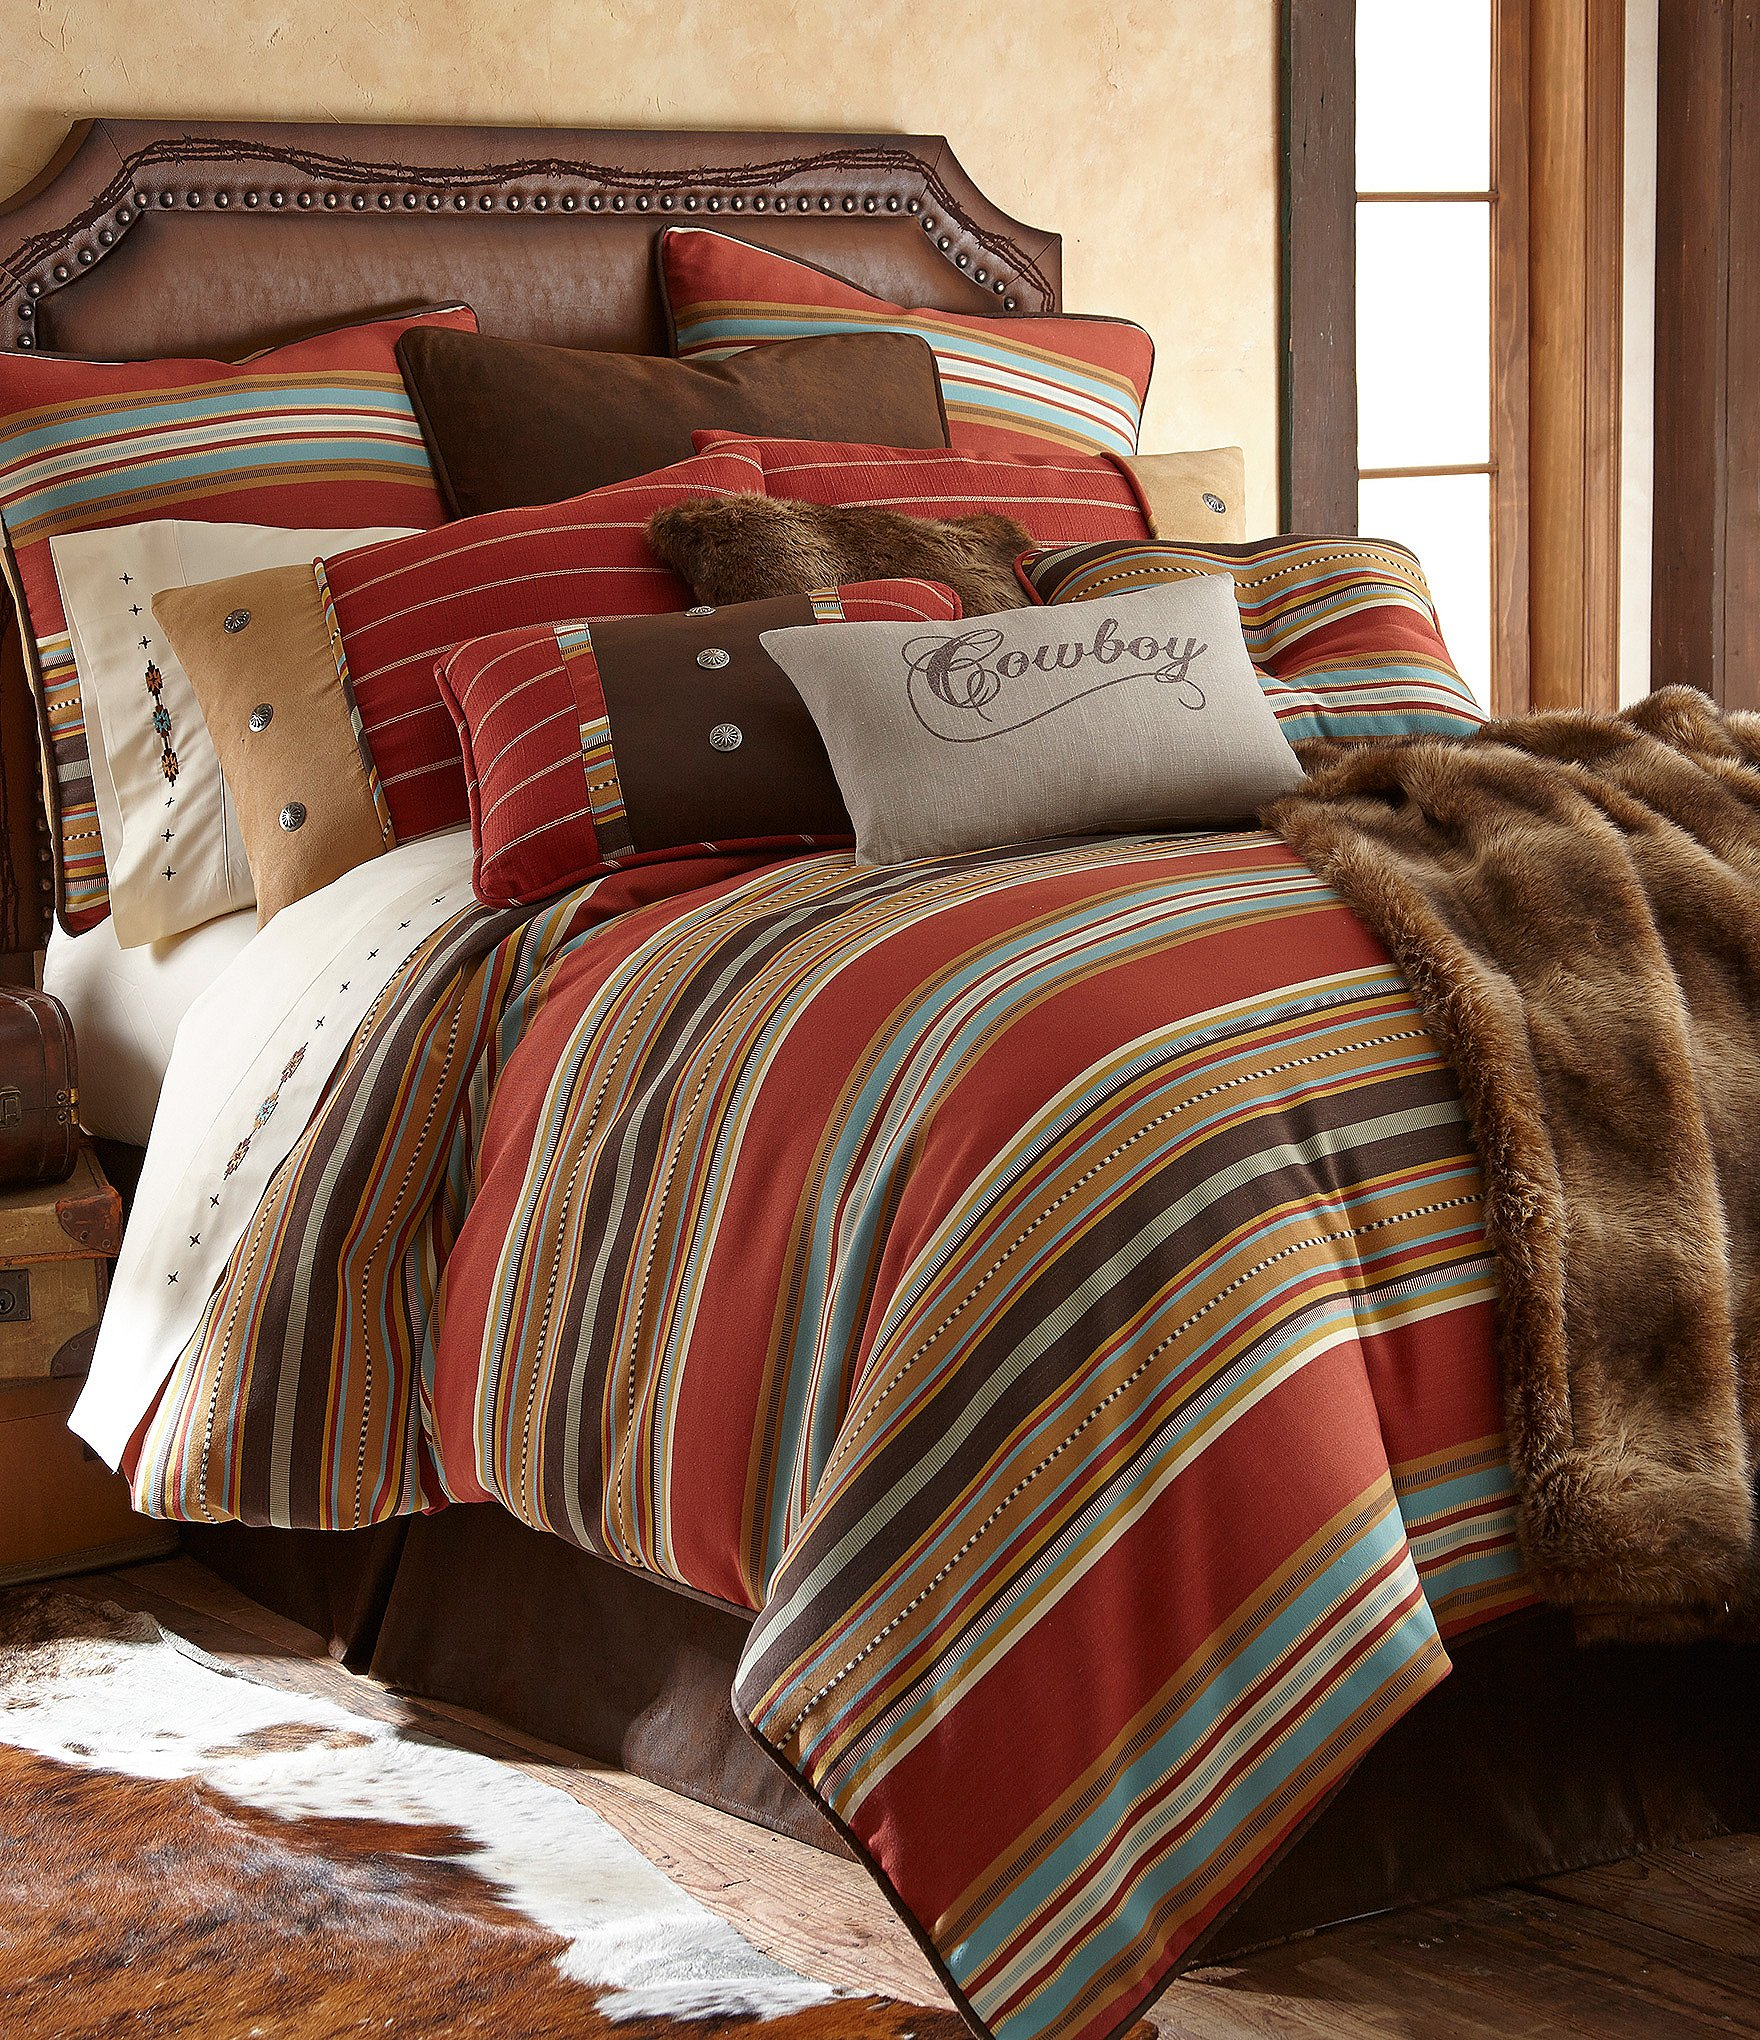 bag in sets bed and or set white red curtains burgundy black patchwork bedding suede comforter comforters brown a